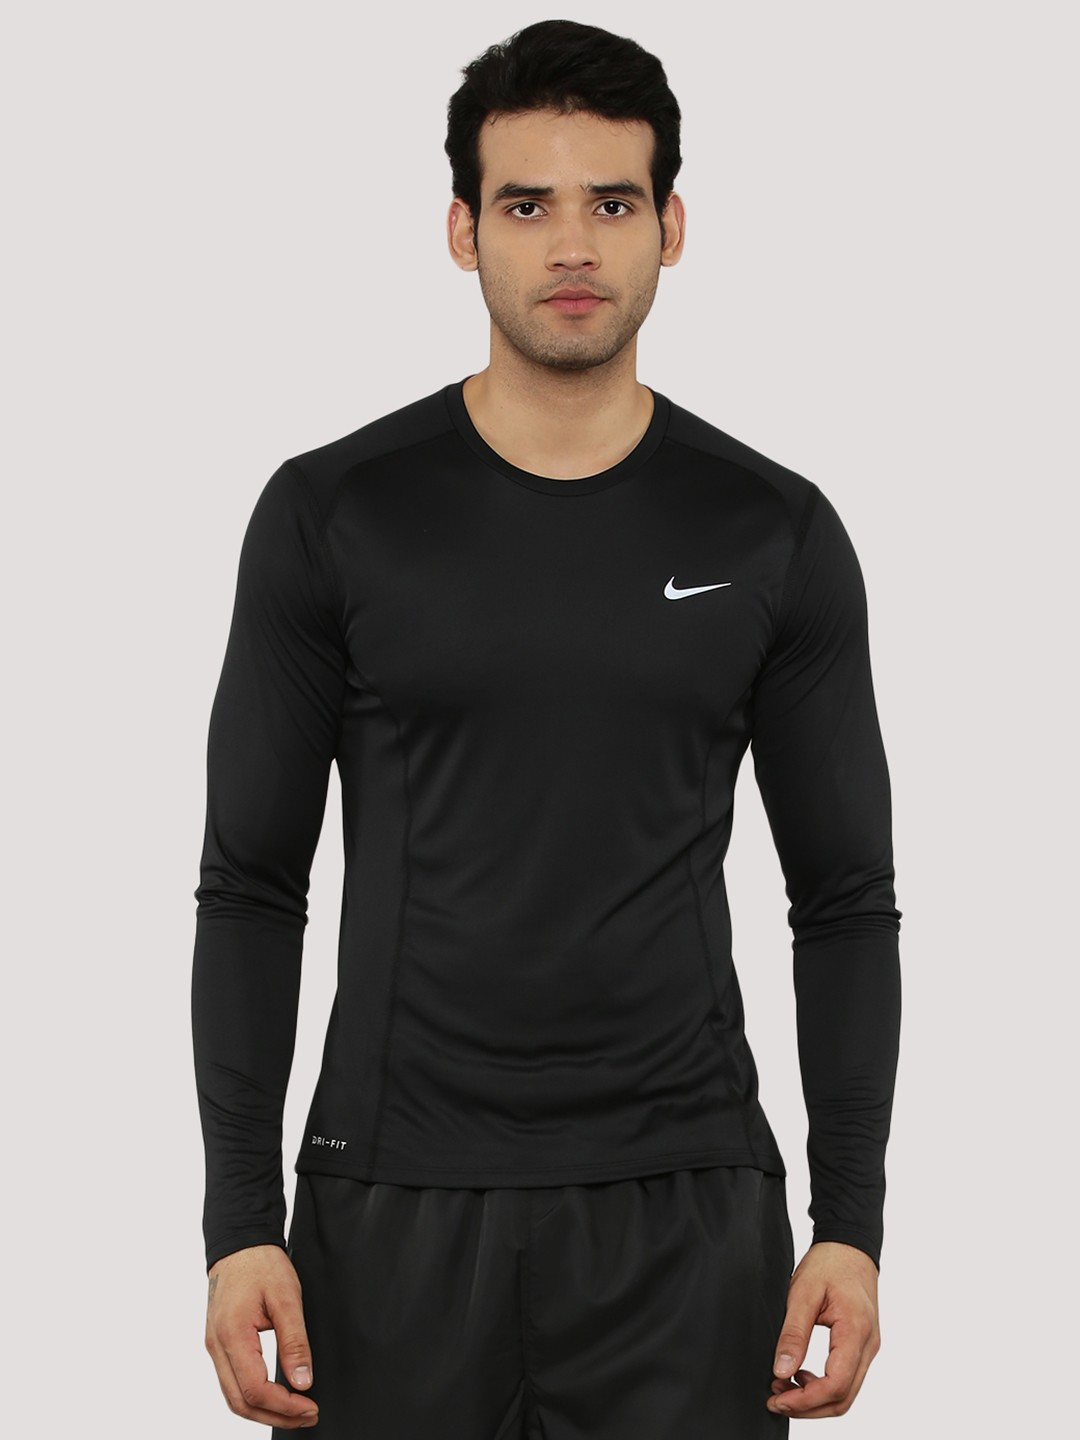 Buy nike dri fit miller full sleeves t shirt for men men for Full sleeves t shirts for men